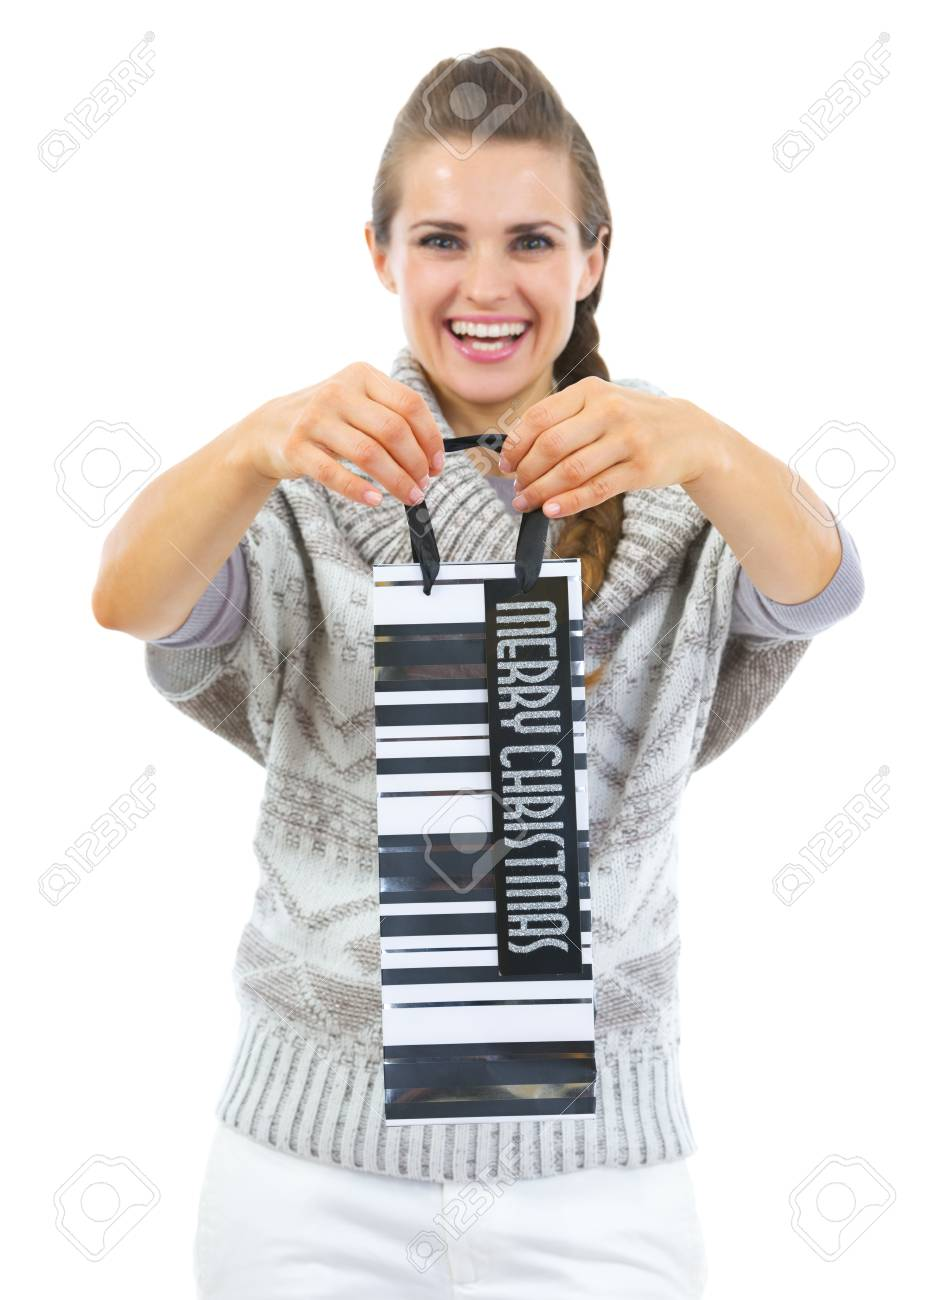 Closeup on christmas shopping bag in hand of smiling young woman in sweater Stock Photo - 22518719